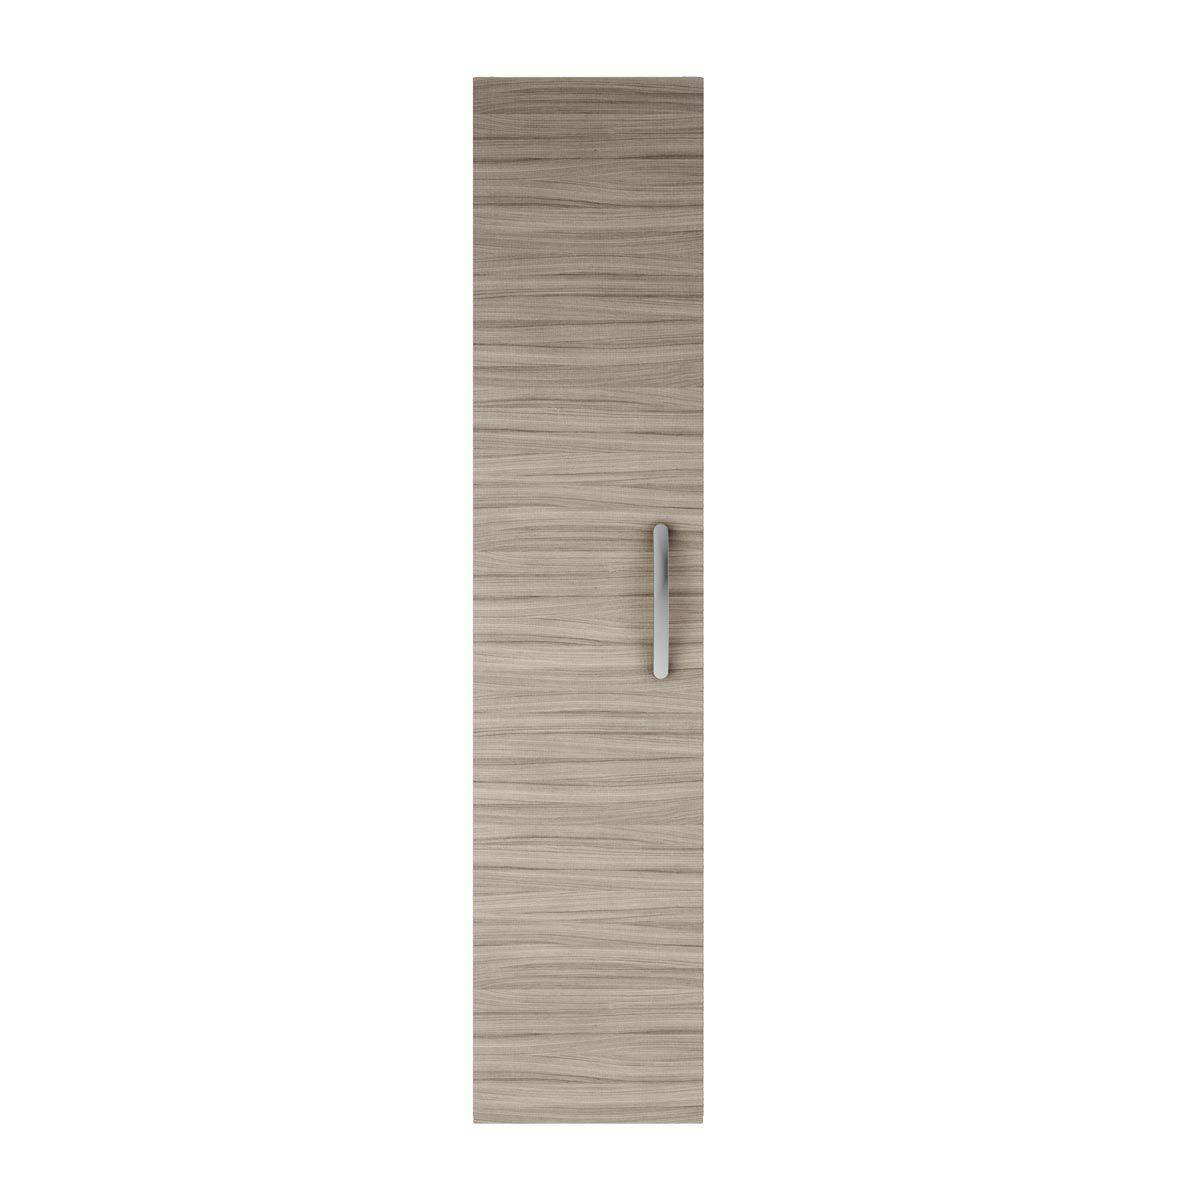 Nuie Athena Driftwood Single Door Tall Unit 300mm